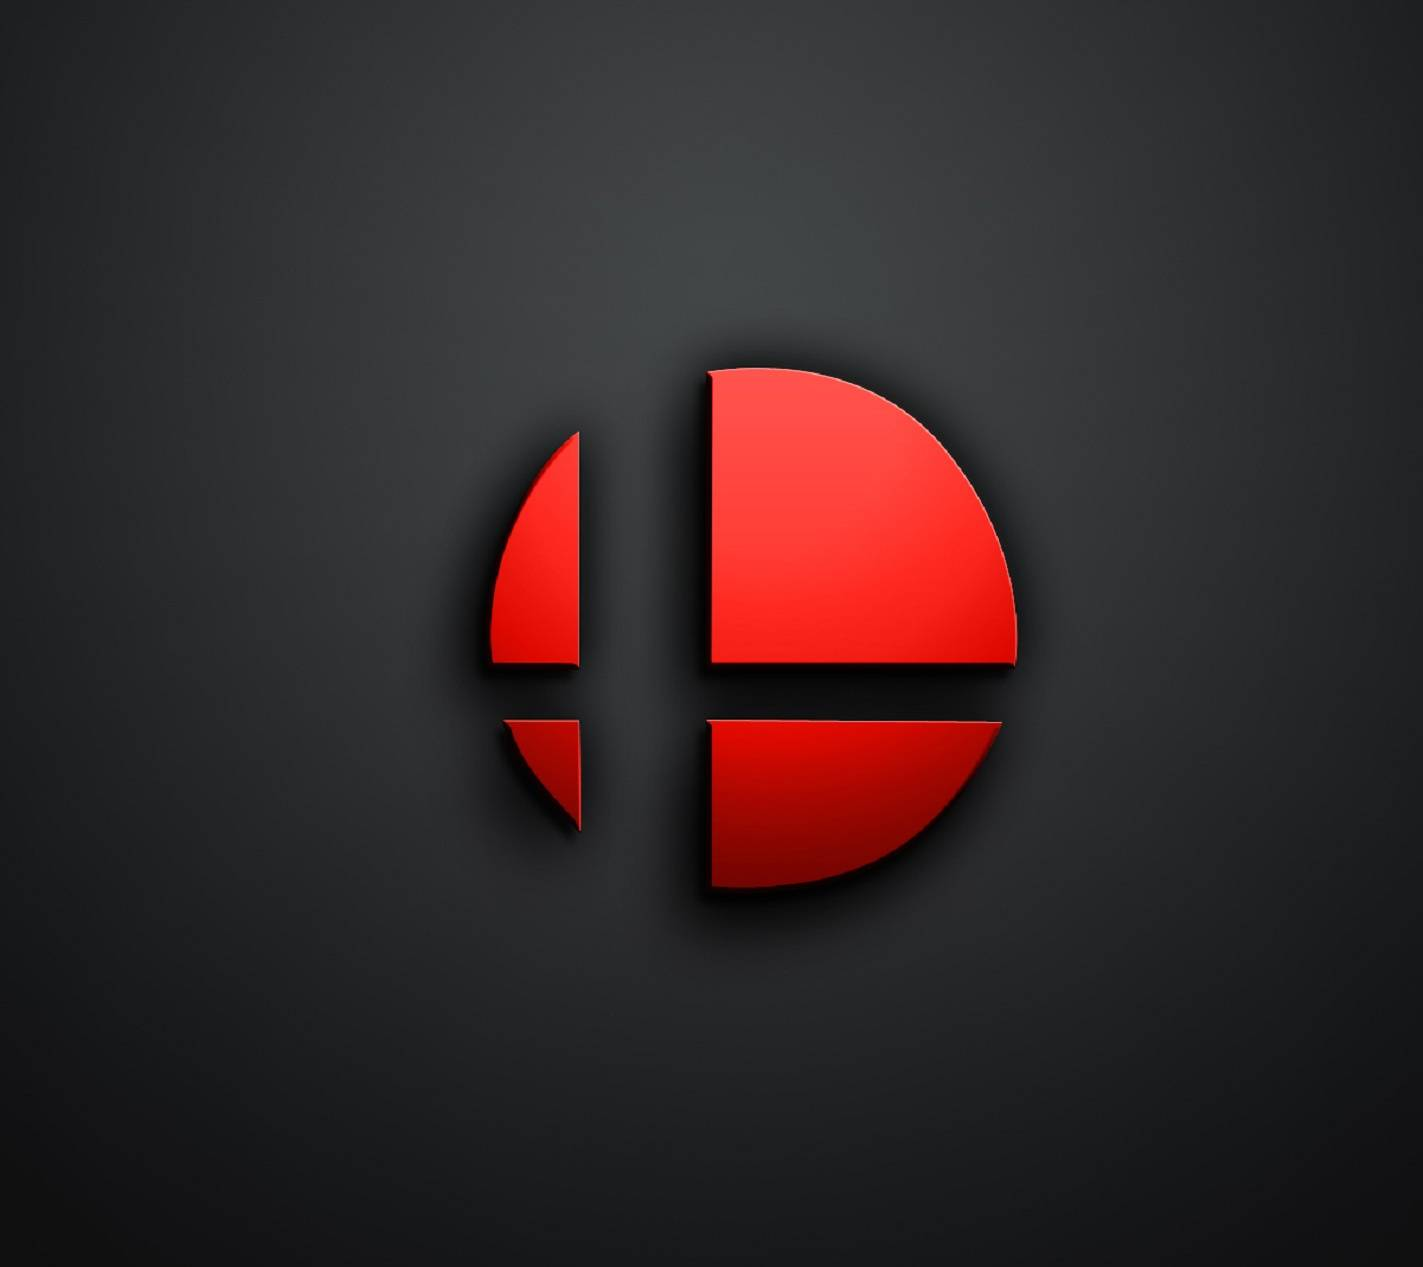 Smash Brothers Logo Wallpaper By Truthsadvocate 15 Free On Zedge